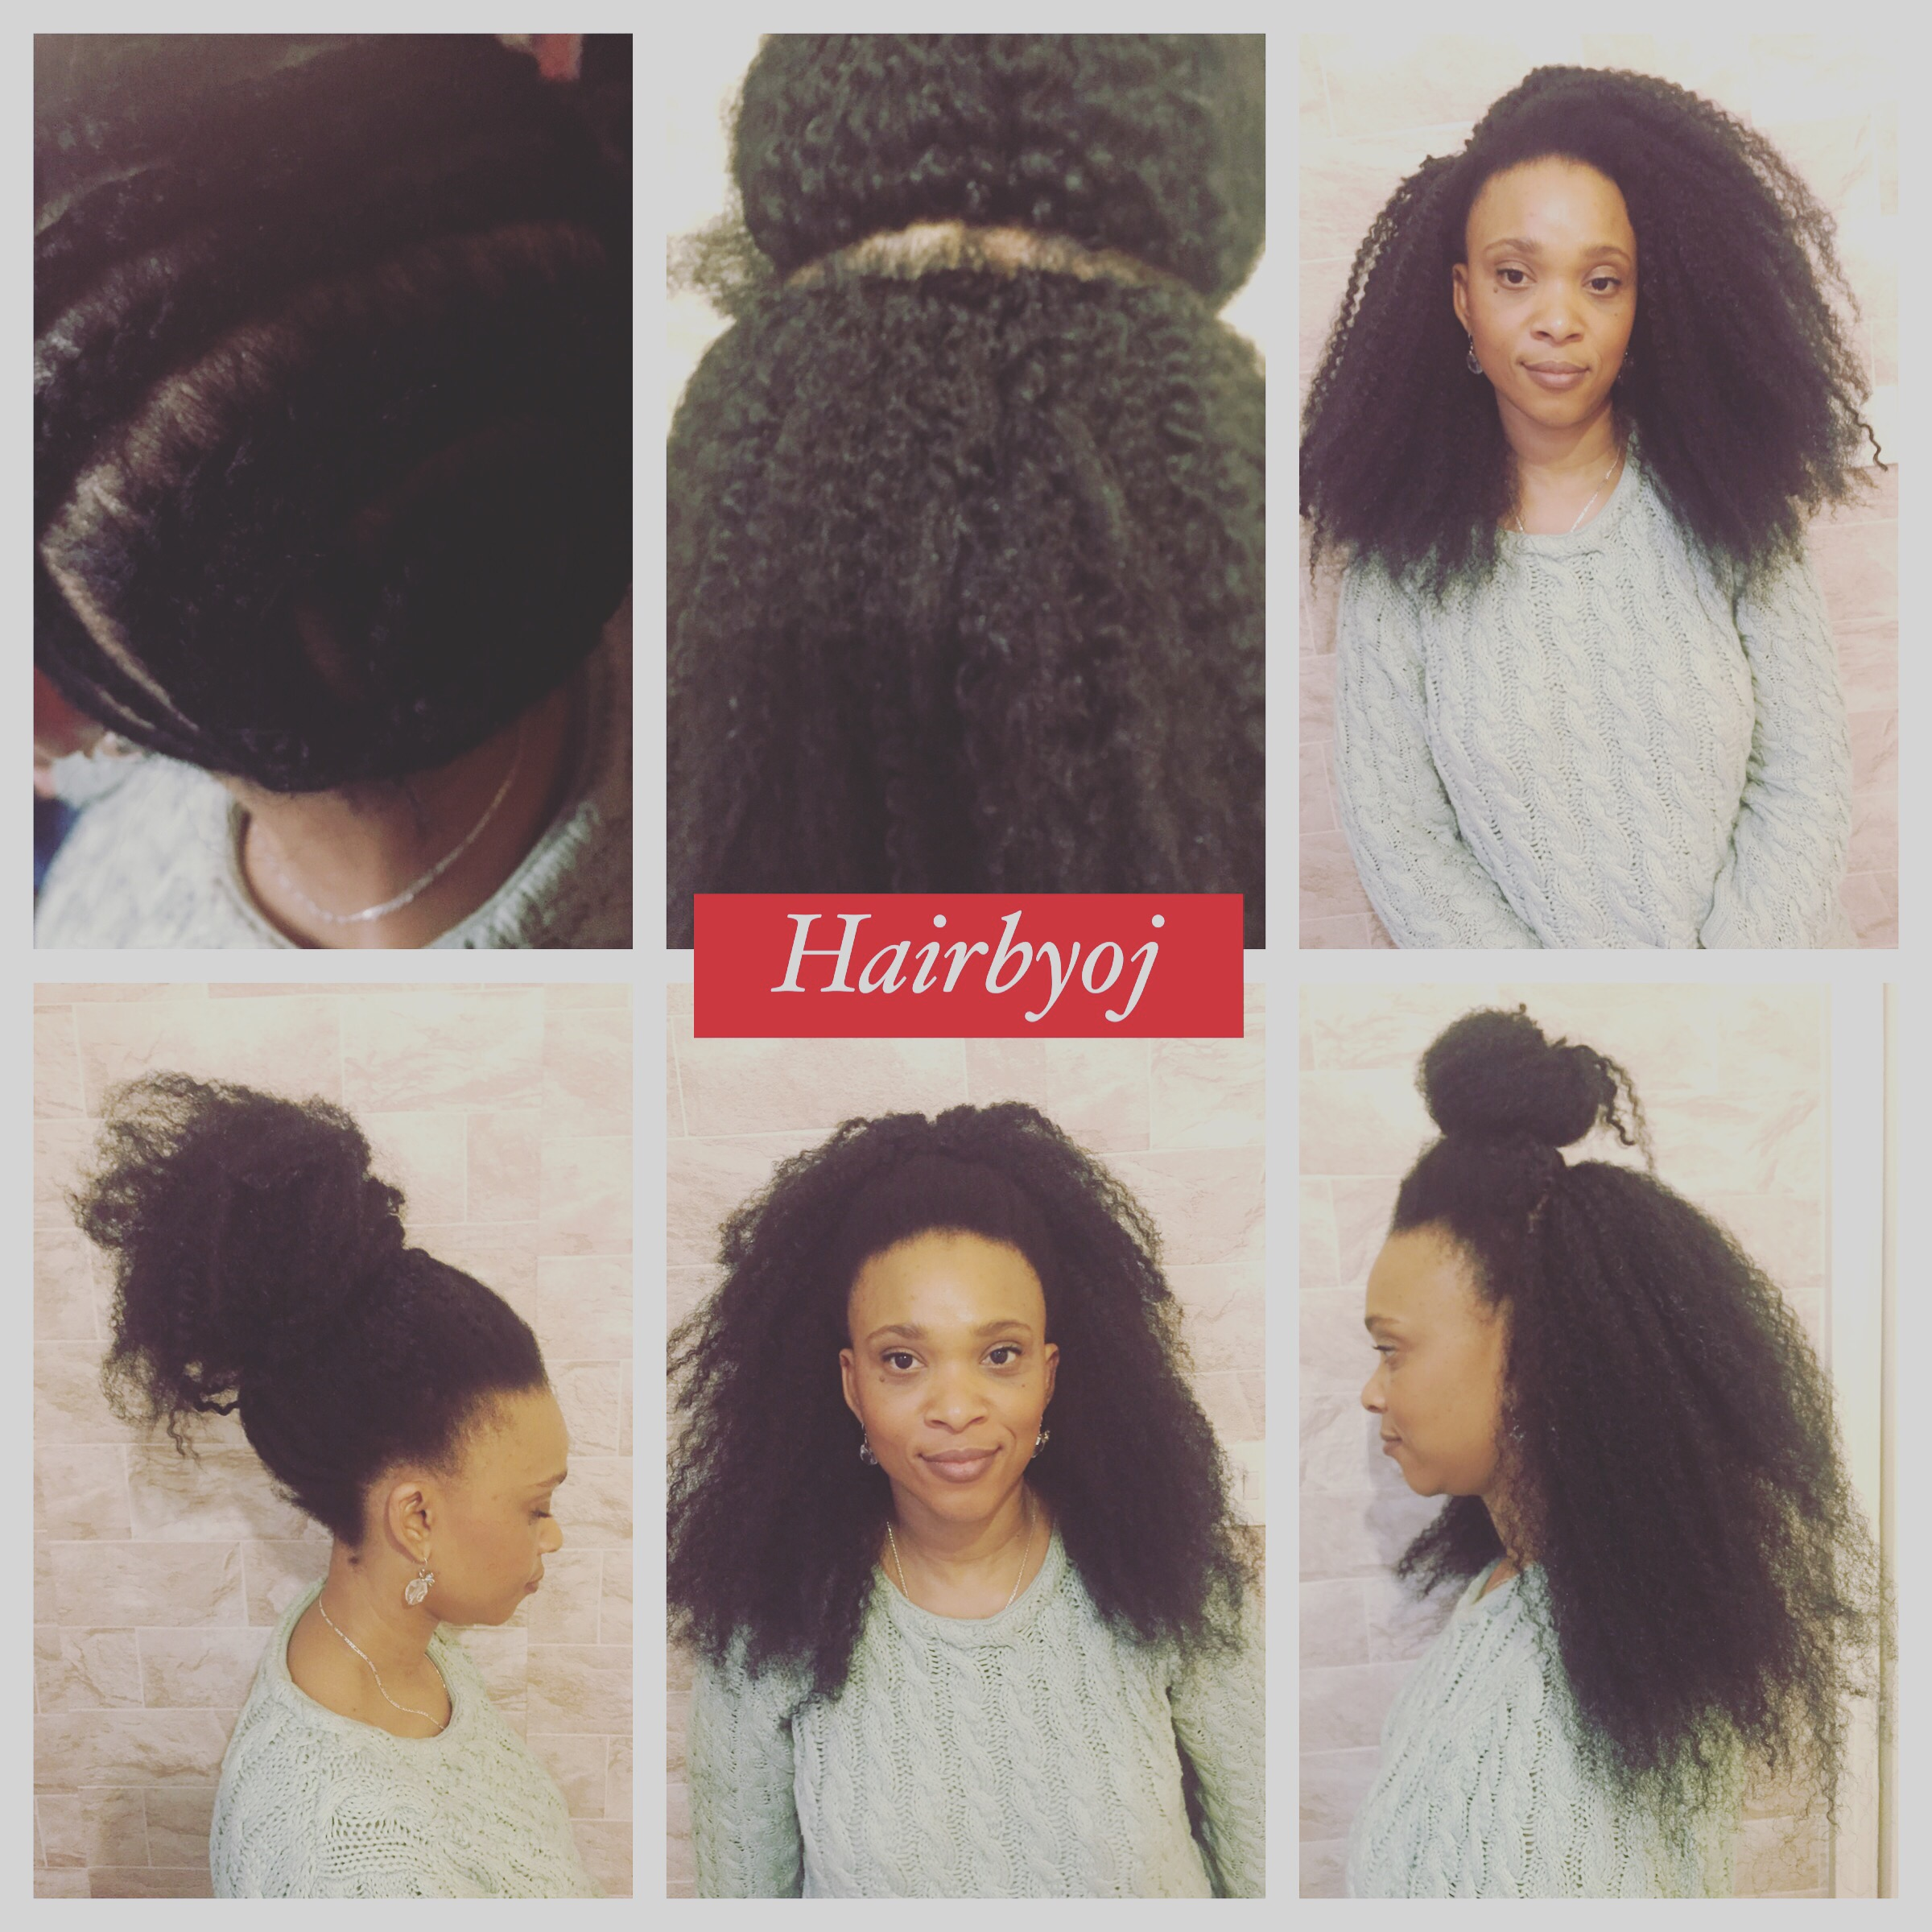 Crochet Hair Leave Out : ... crochet braids with Marley hair and perimeter leave out, no leave out